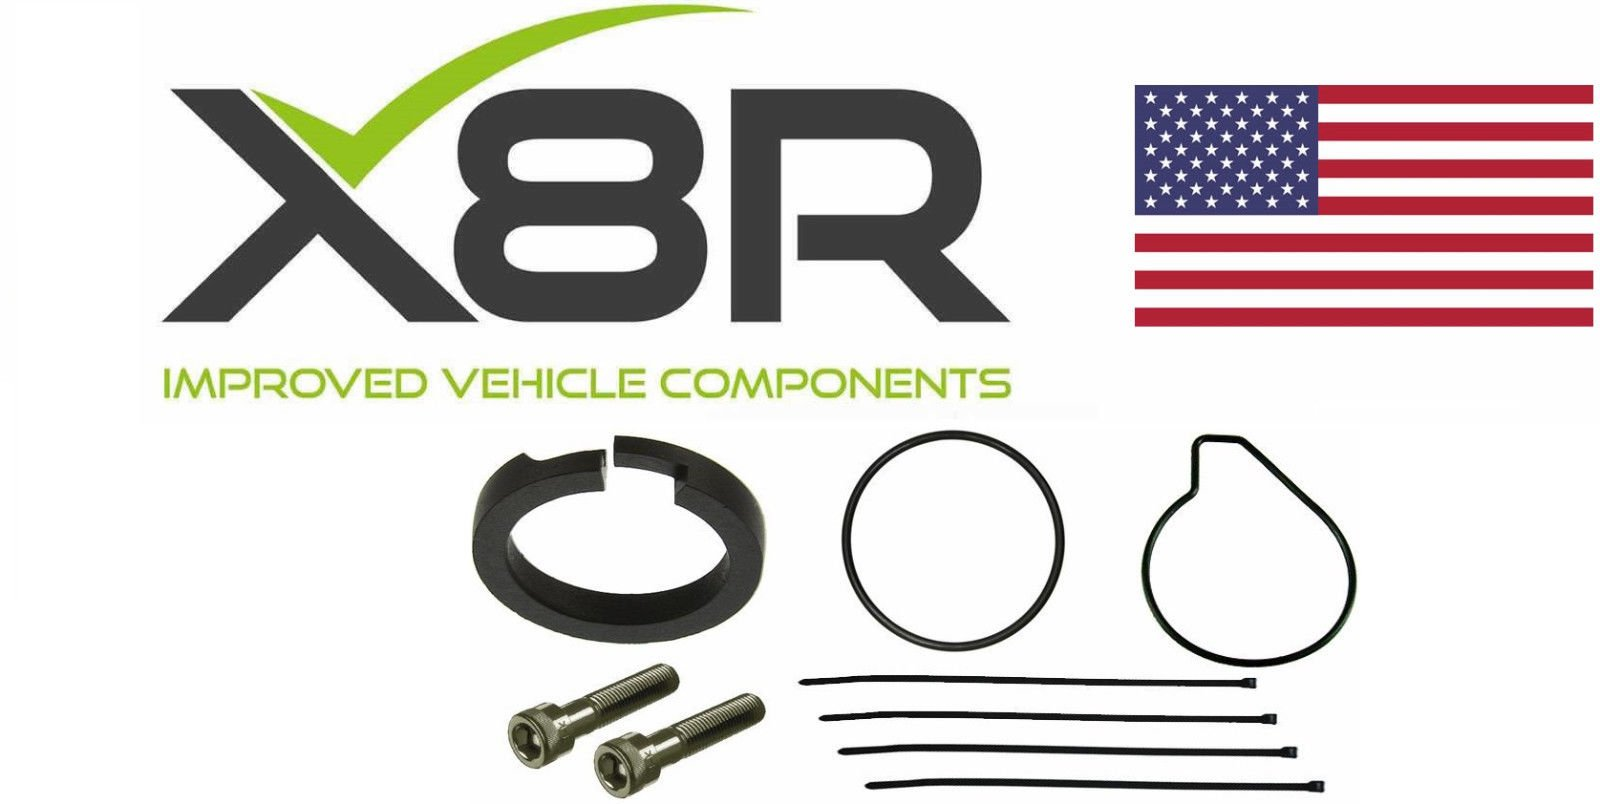 JAGUAR XJ6 XJ8 XJR X350 X358 WABCO AIR SUSPENSION COMPRESSOR PISTON RING REPAIR X8R45